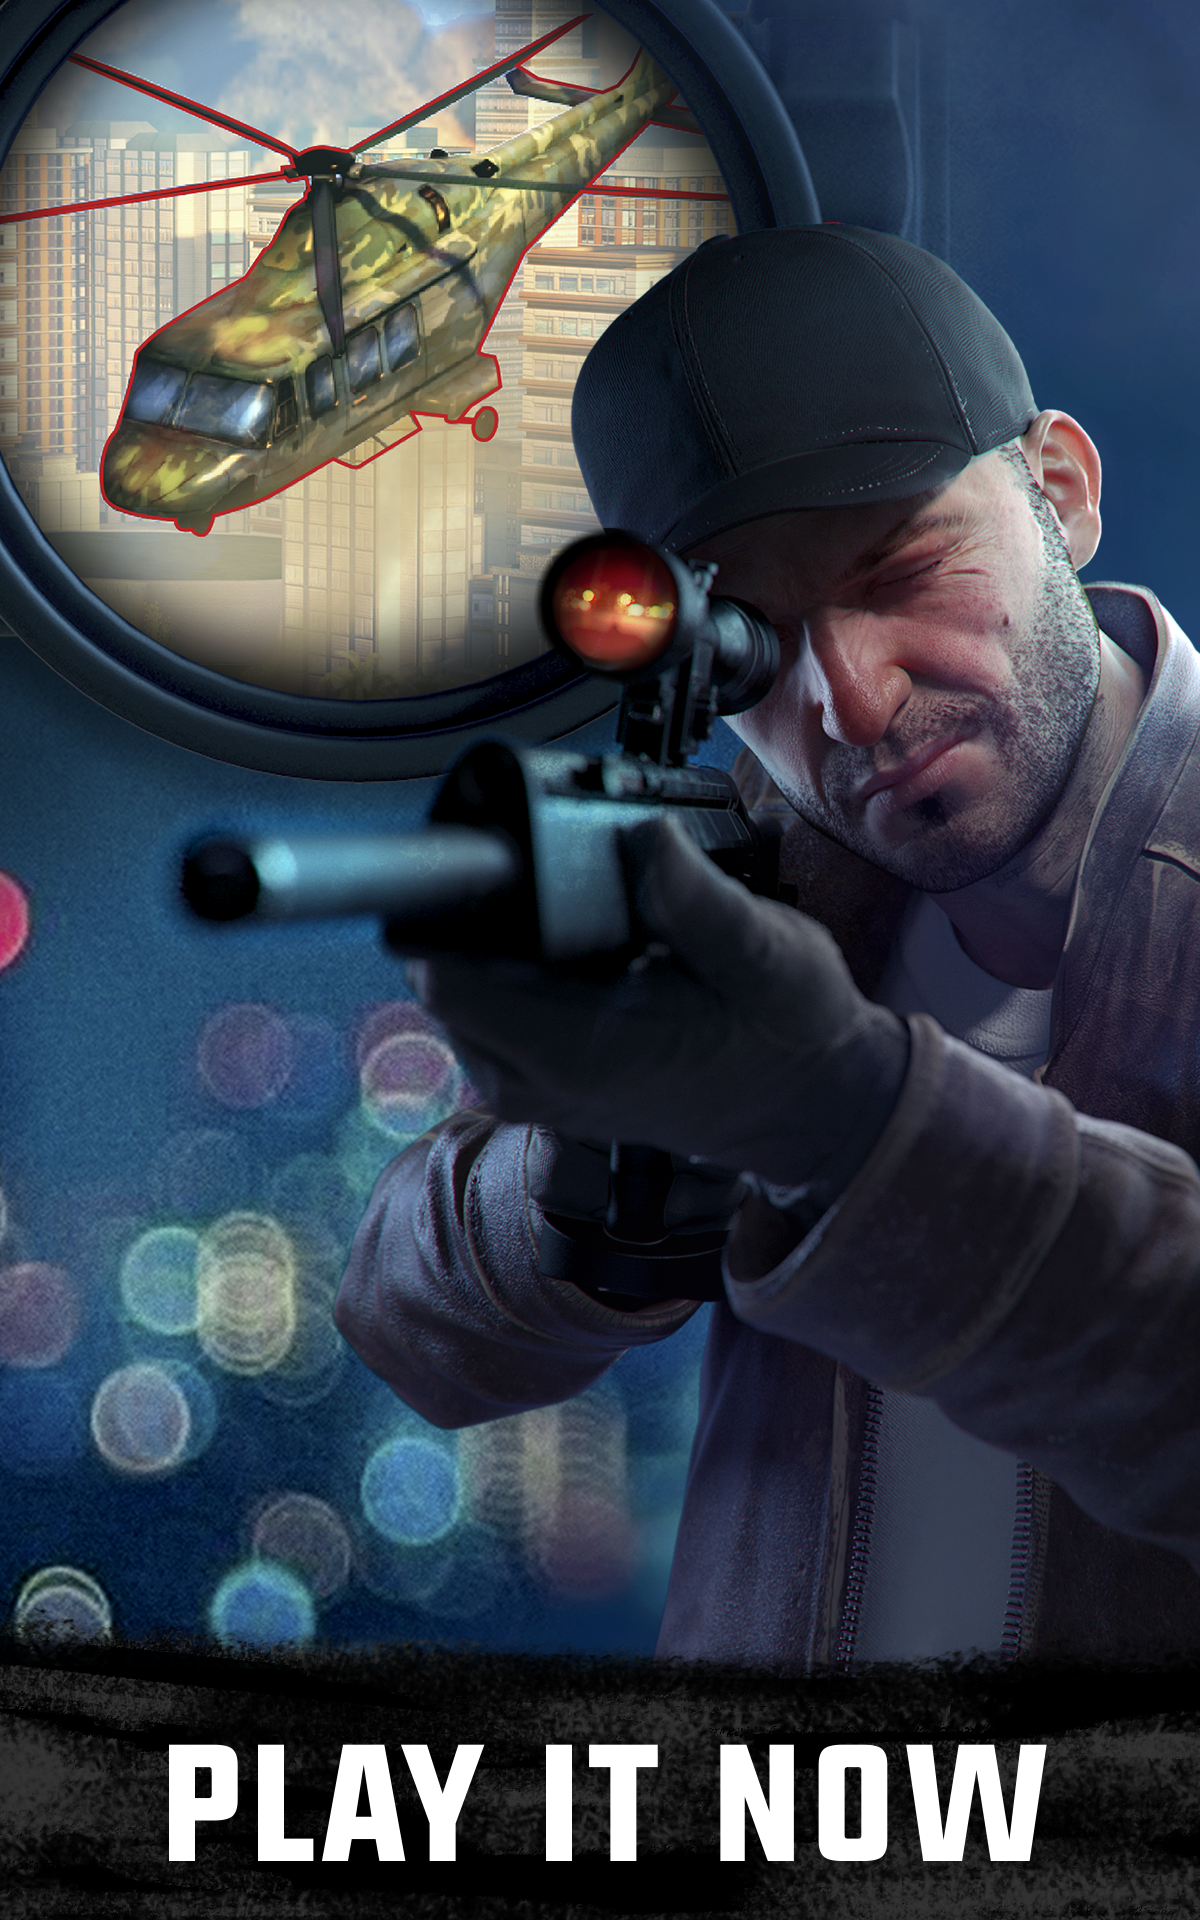 Sniper assassin iii&& try the games free